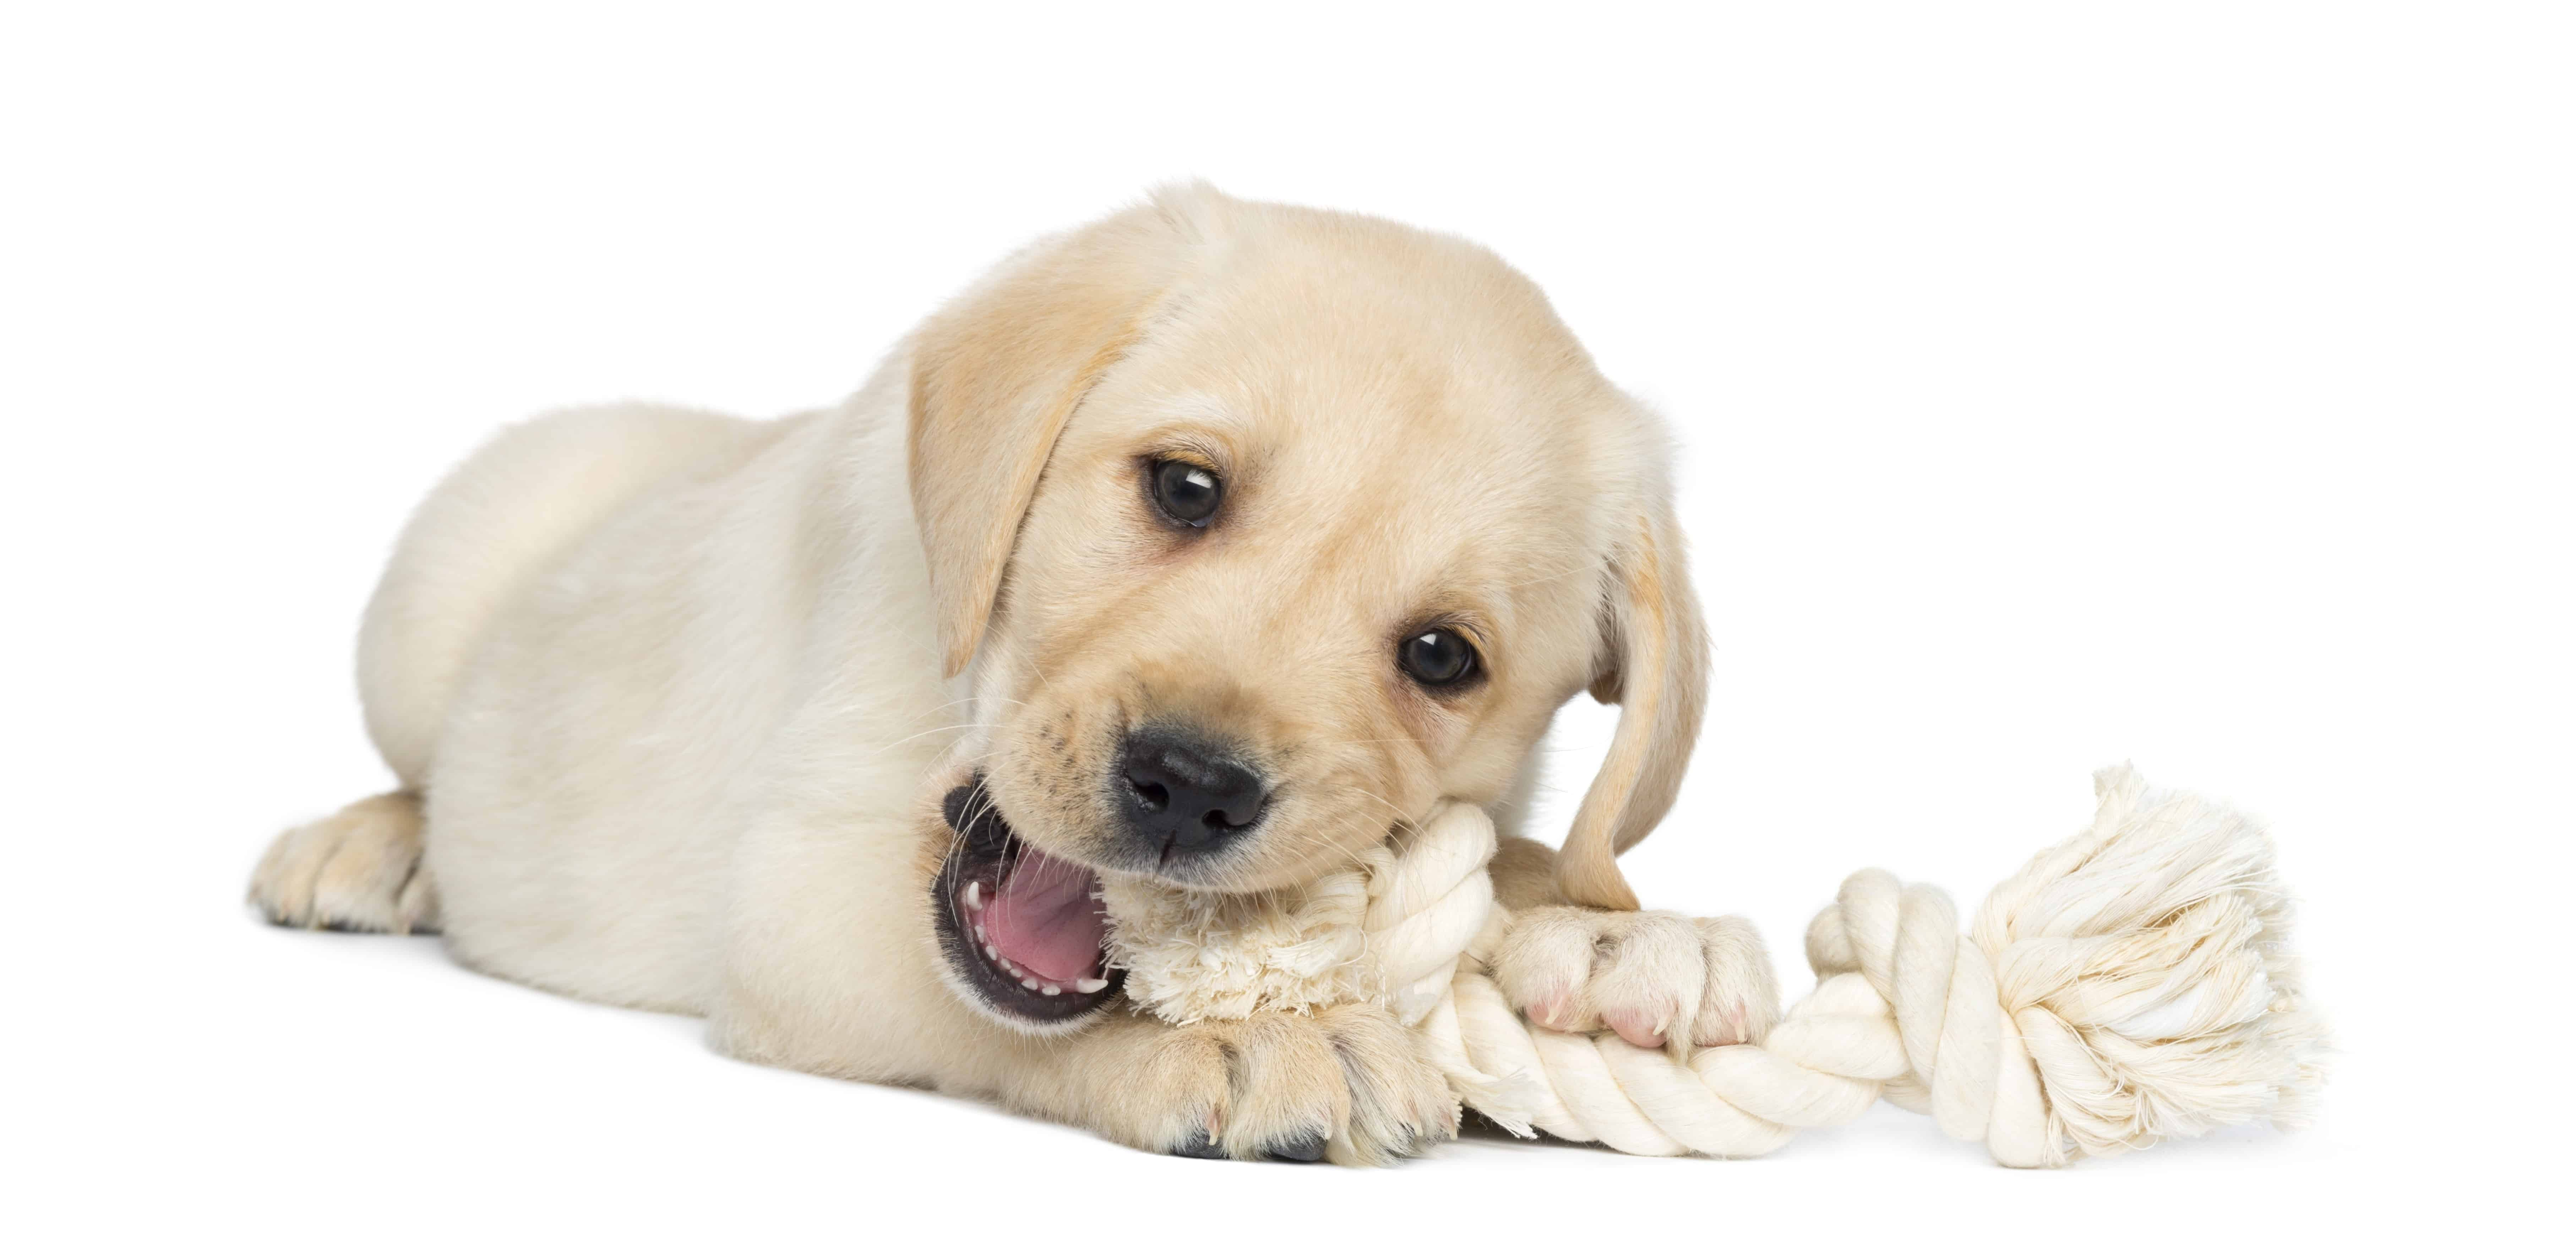 Dog chewing on dog toy, dog toys